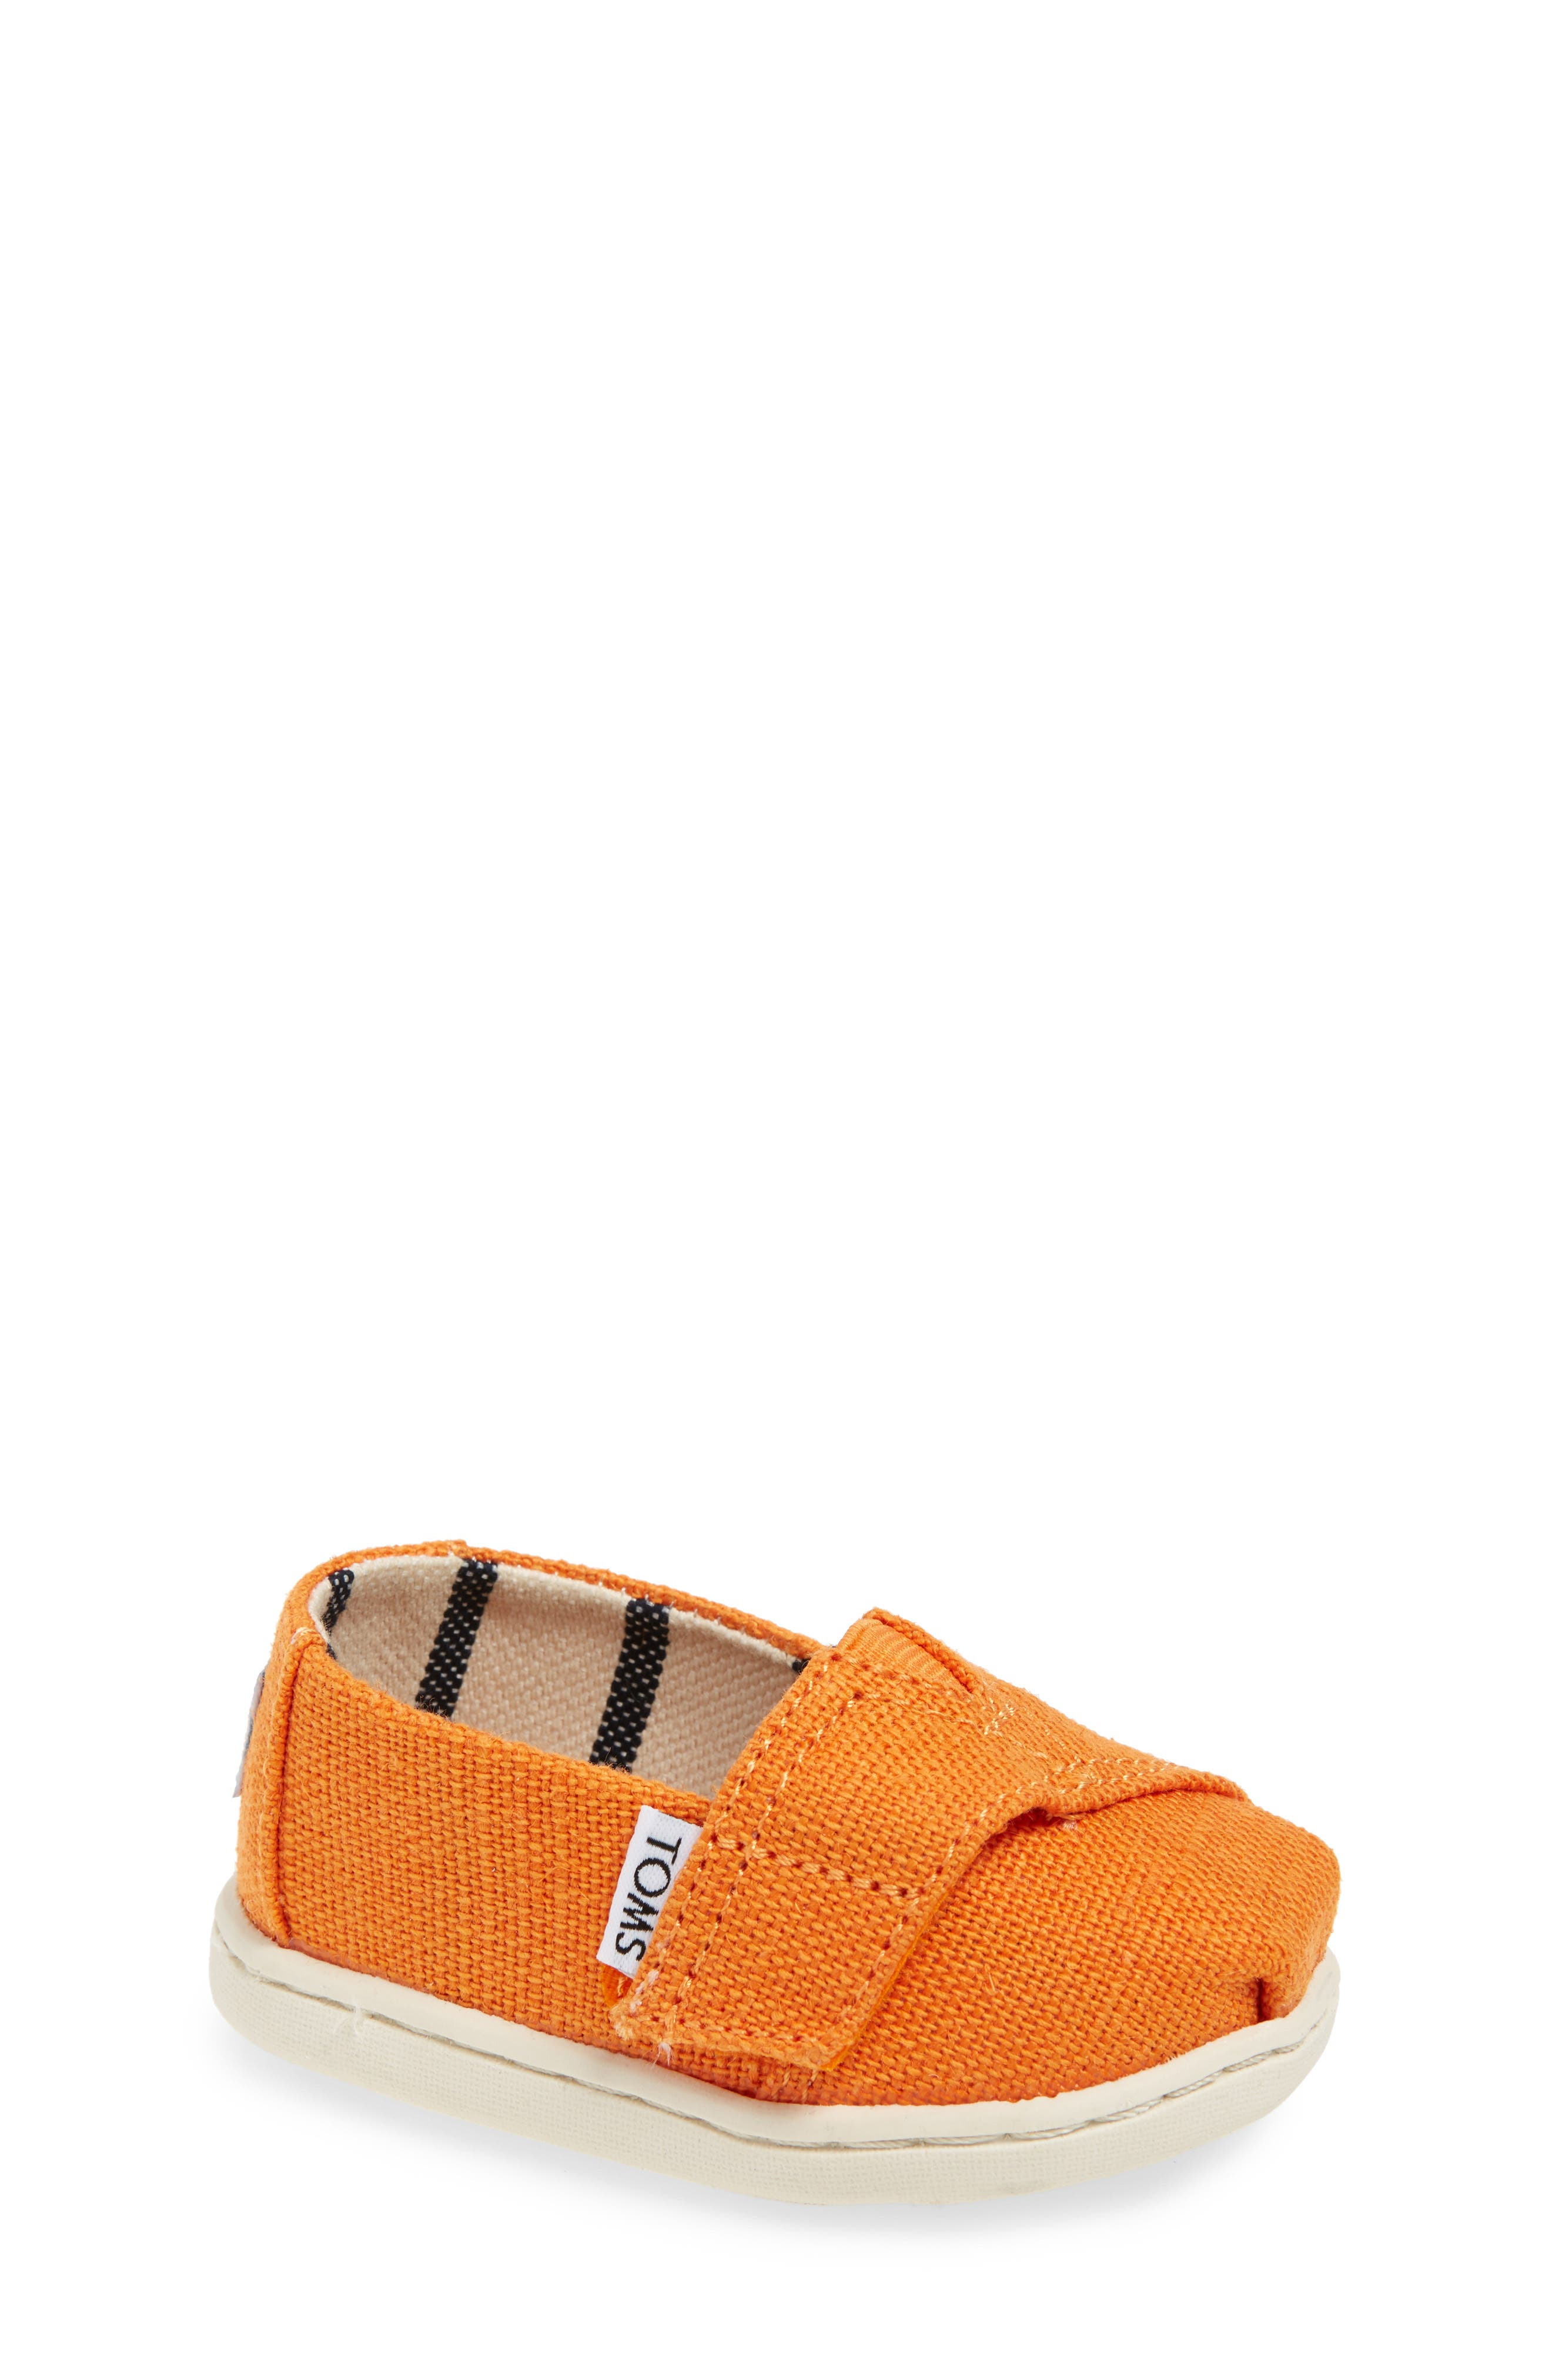 Chambray Slip-On,                         Main,                         color, Russet Orange Heritage Canvas